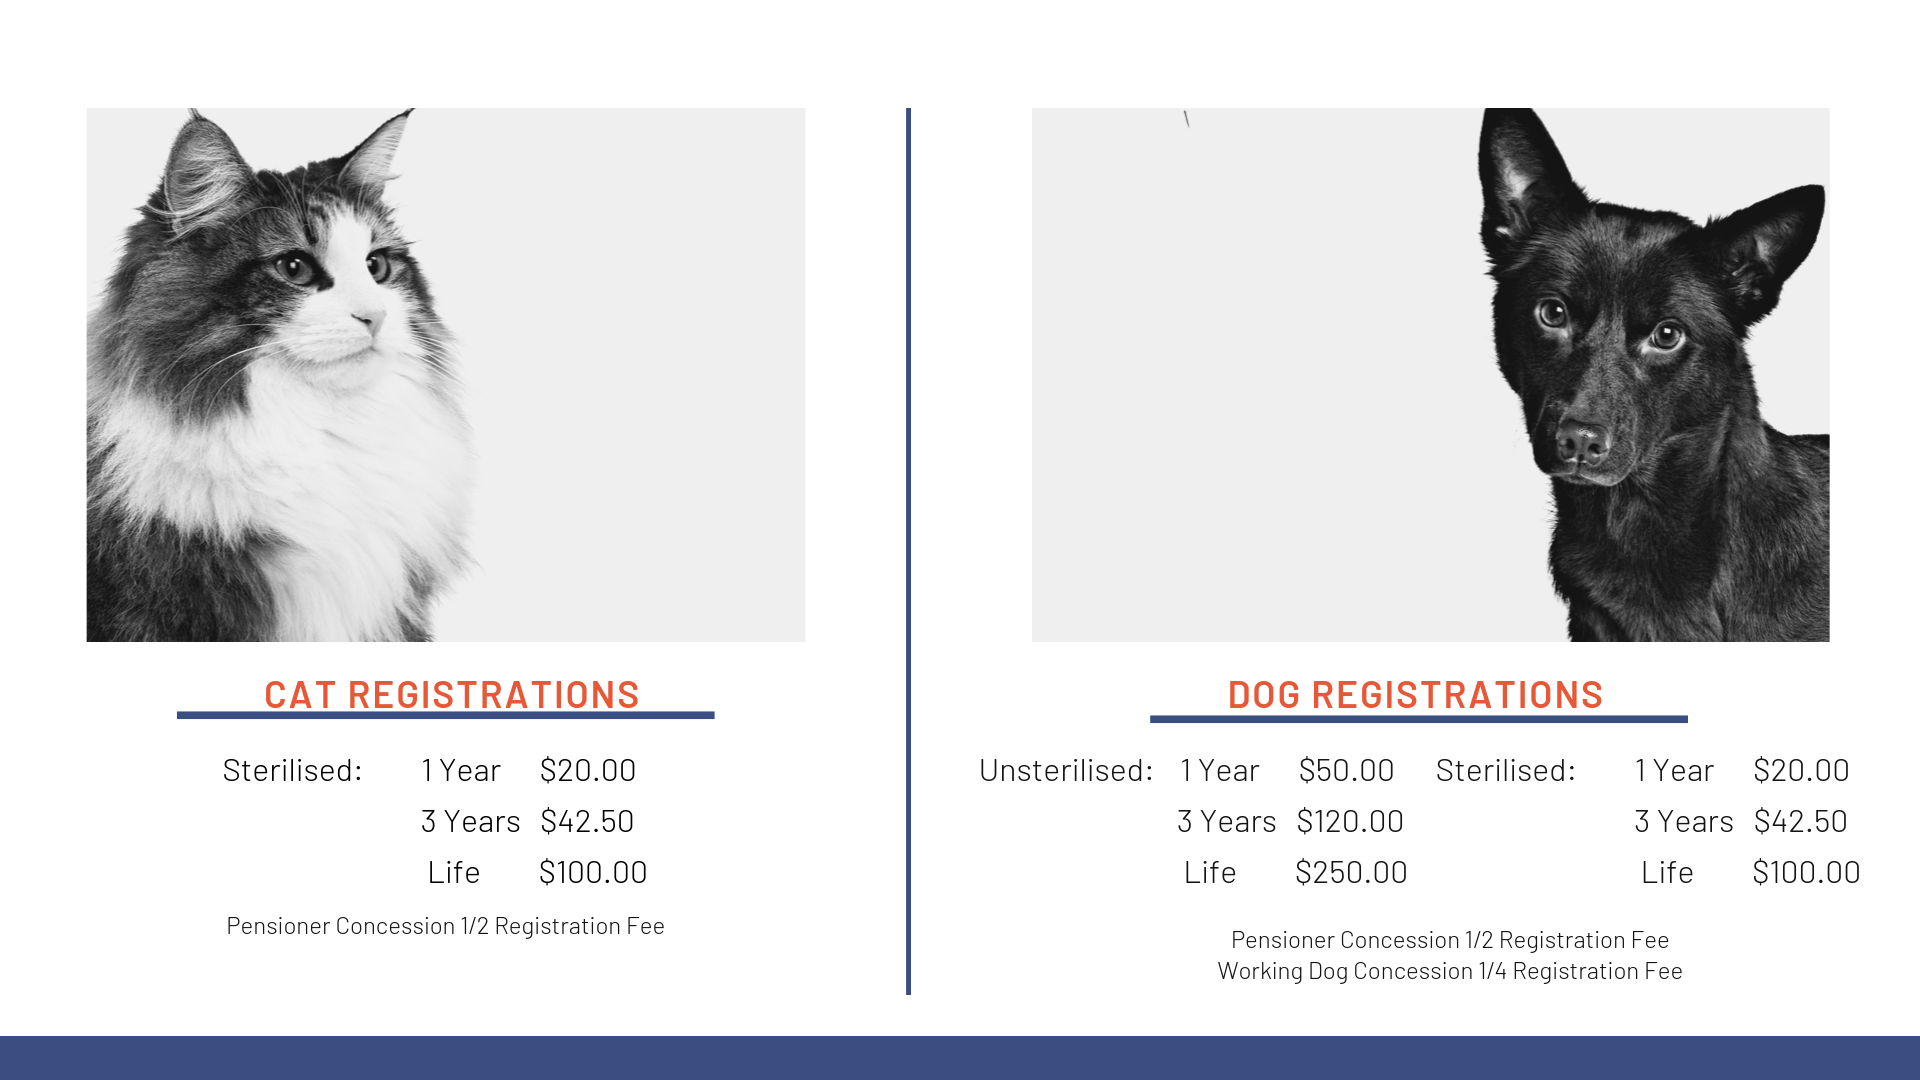 Cat and Dog Registrations